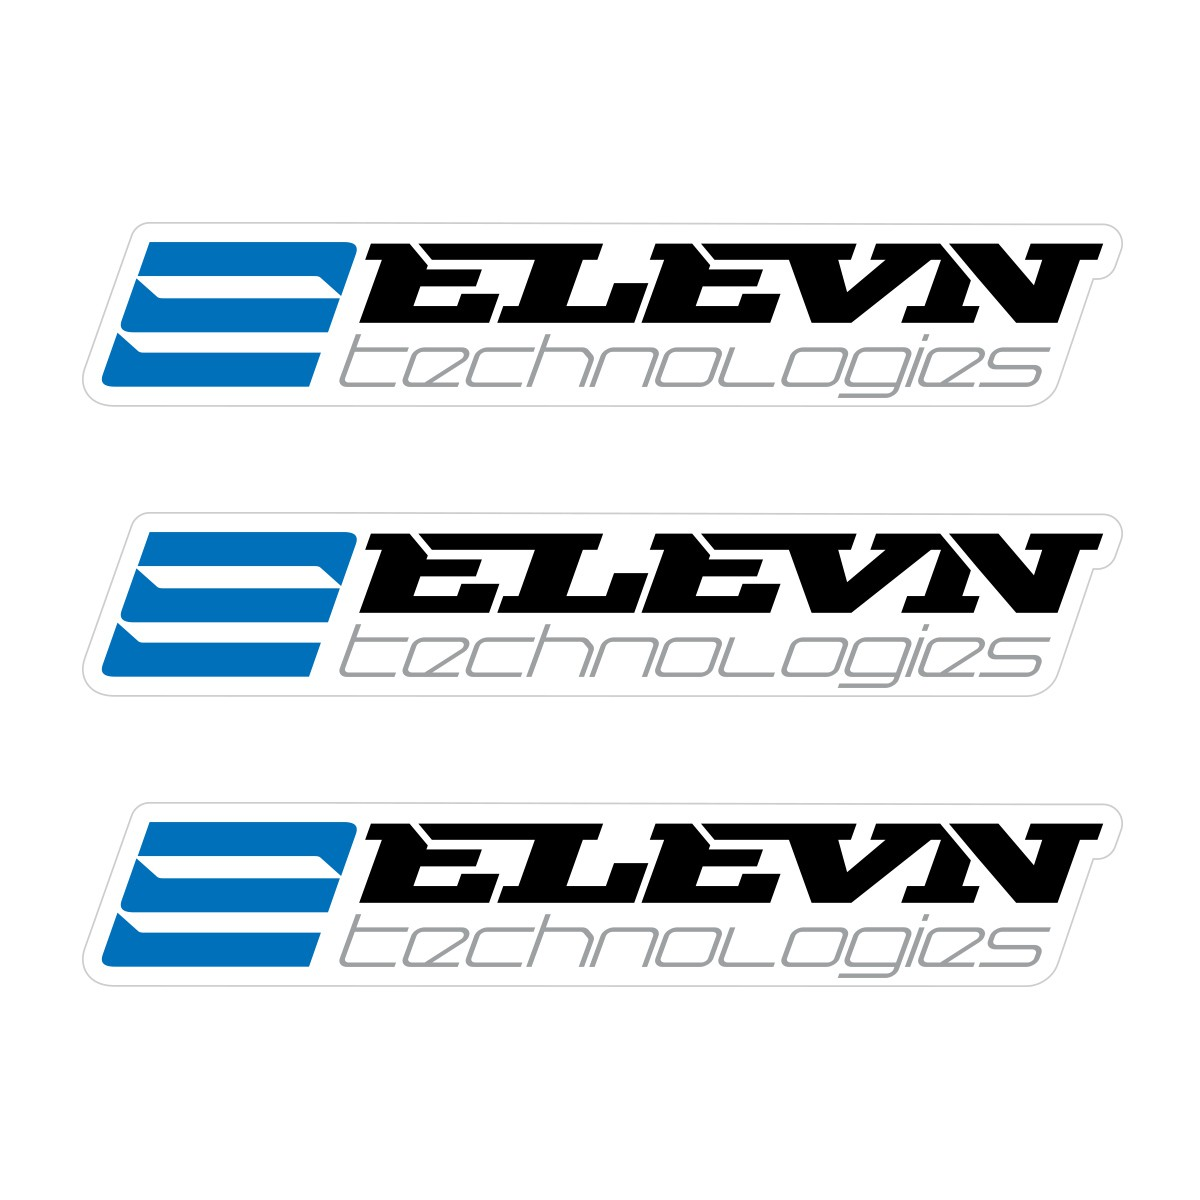 ELEVN SMALL STICKER 111x19MM PACK X 3 BLACK/BLUE